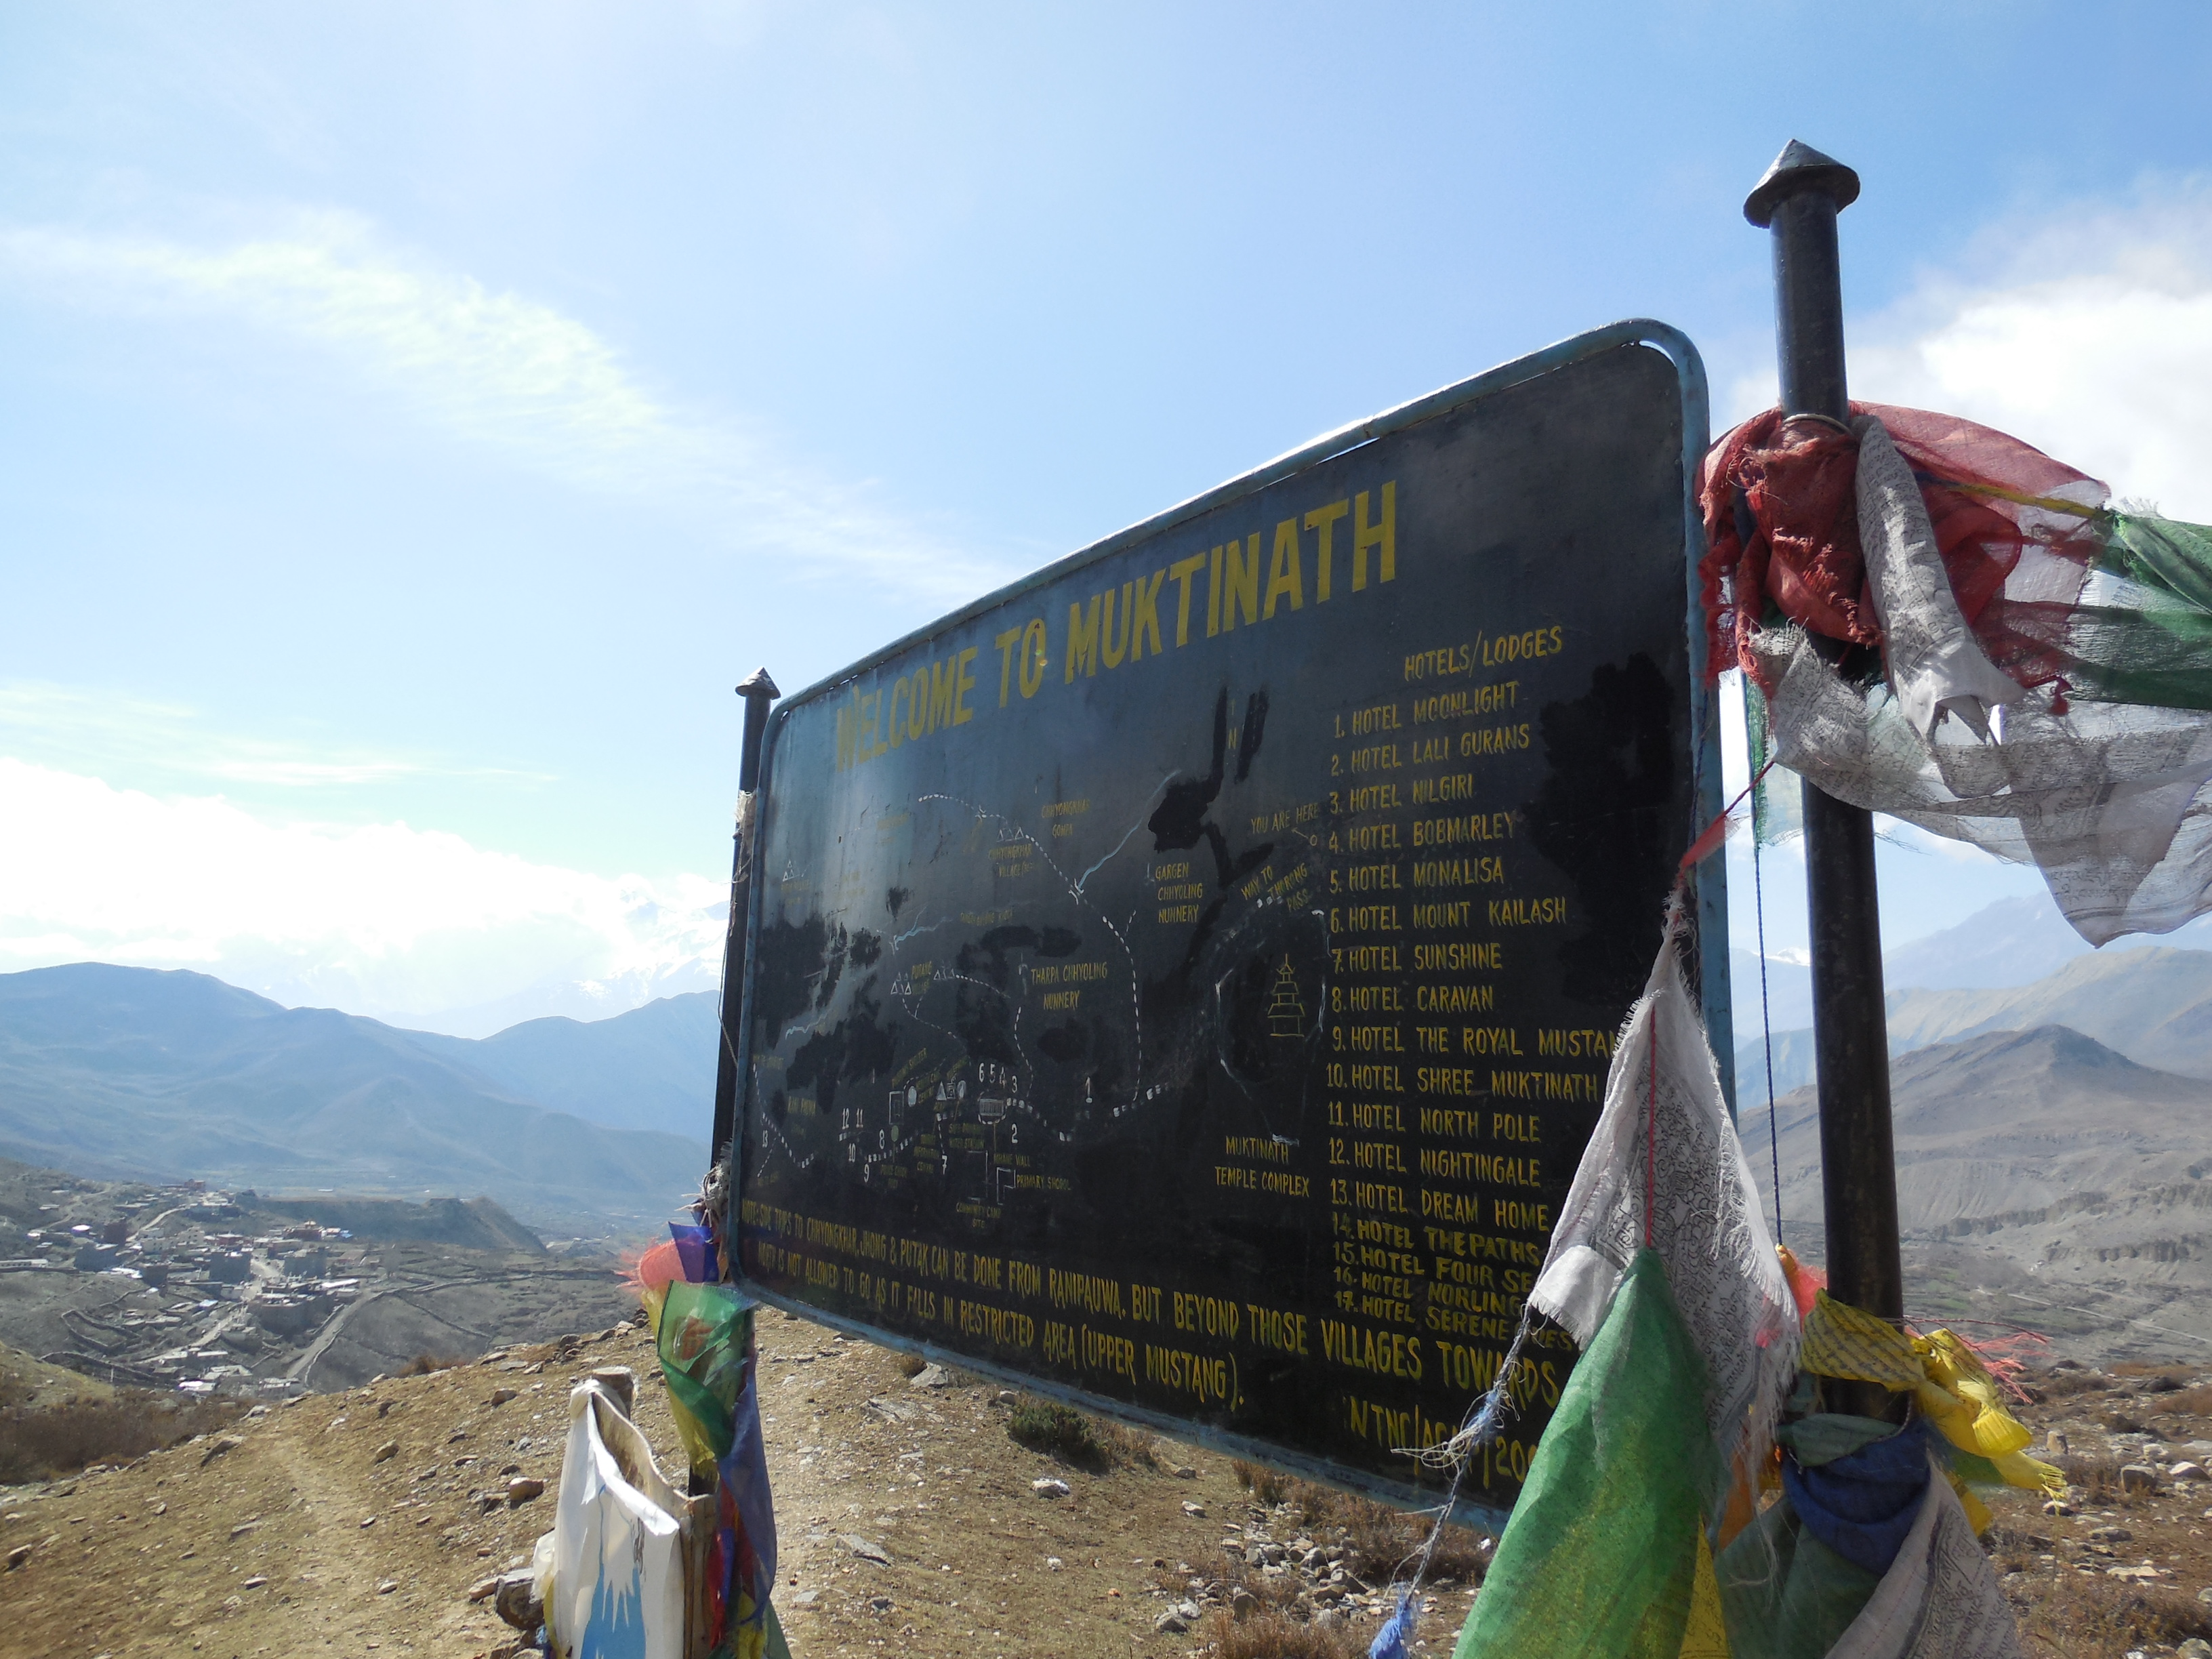 Arrived in Muktinath